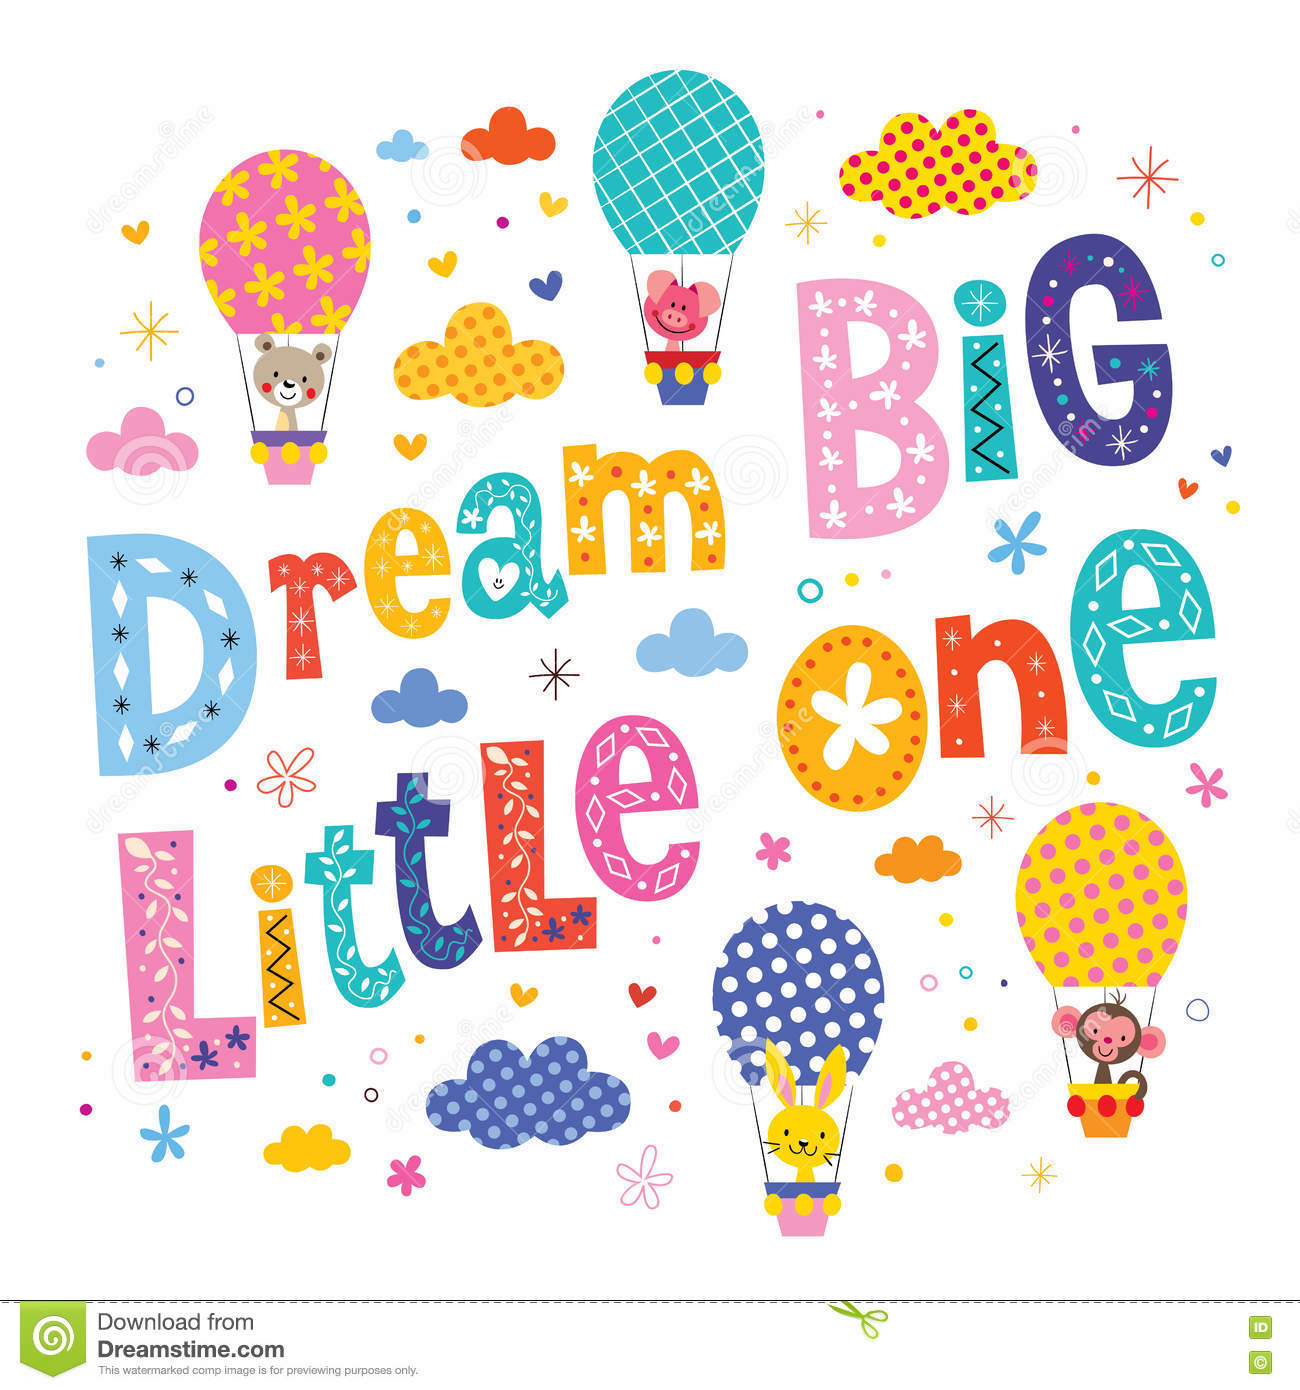 Dream Big Little One Kids Nursery Art Stock Photo.